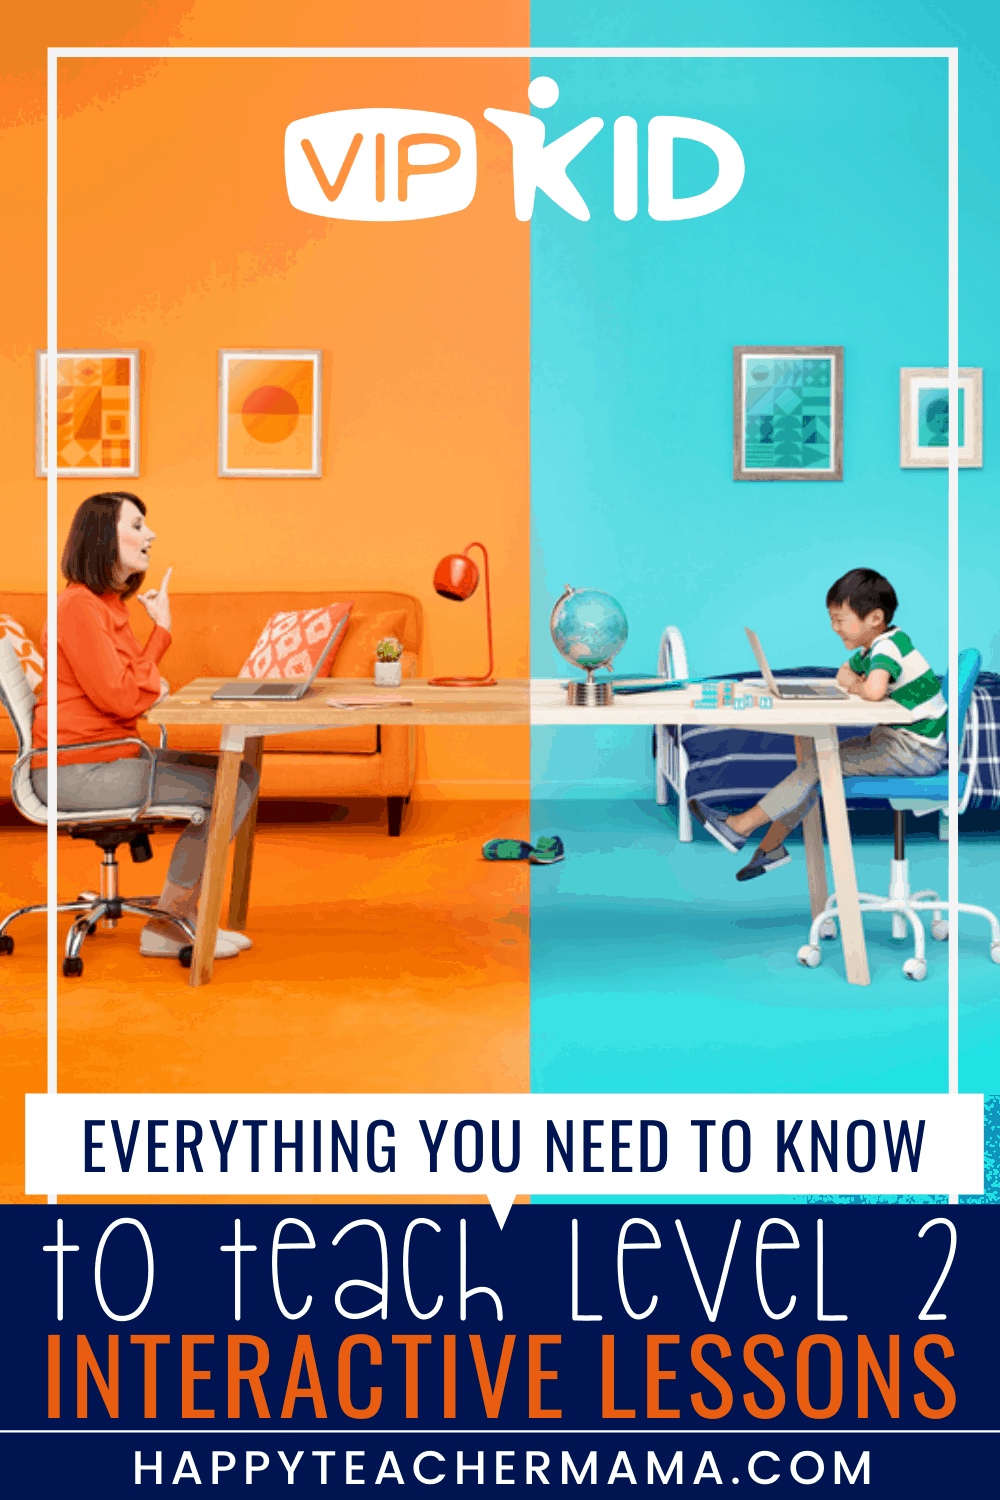 Everything you need to know to teach VIPkid Level 2 Interactive lessons